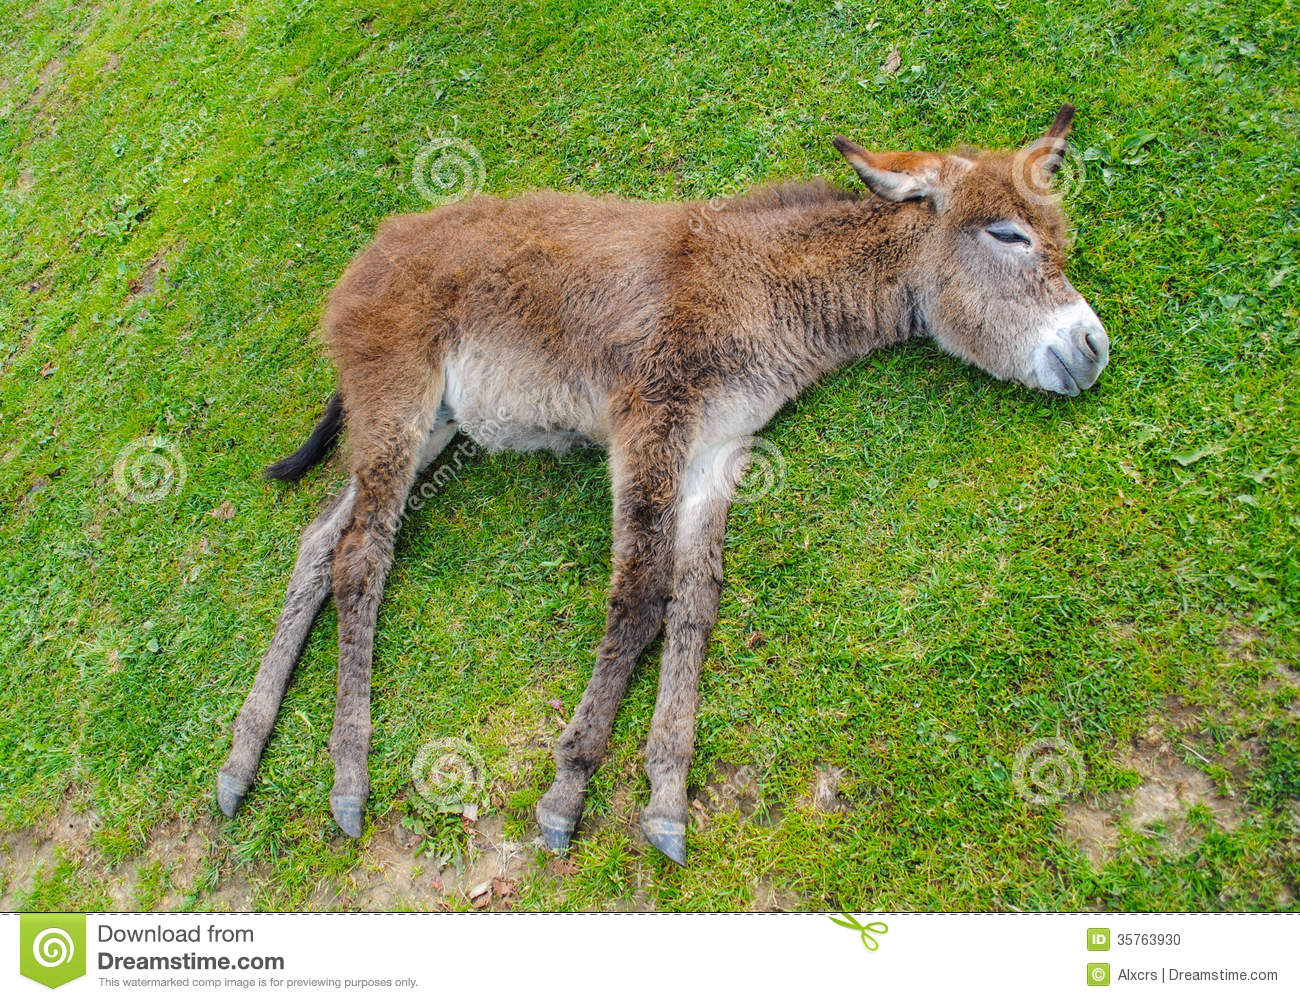 Cute Animal Wallpapers Free Download Donkey Stock Photo Image 35763930